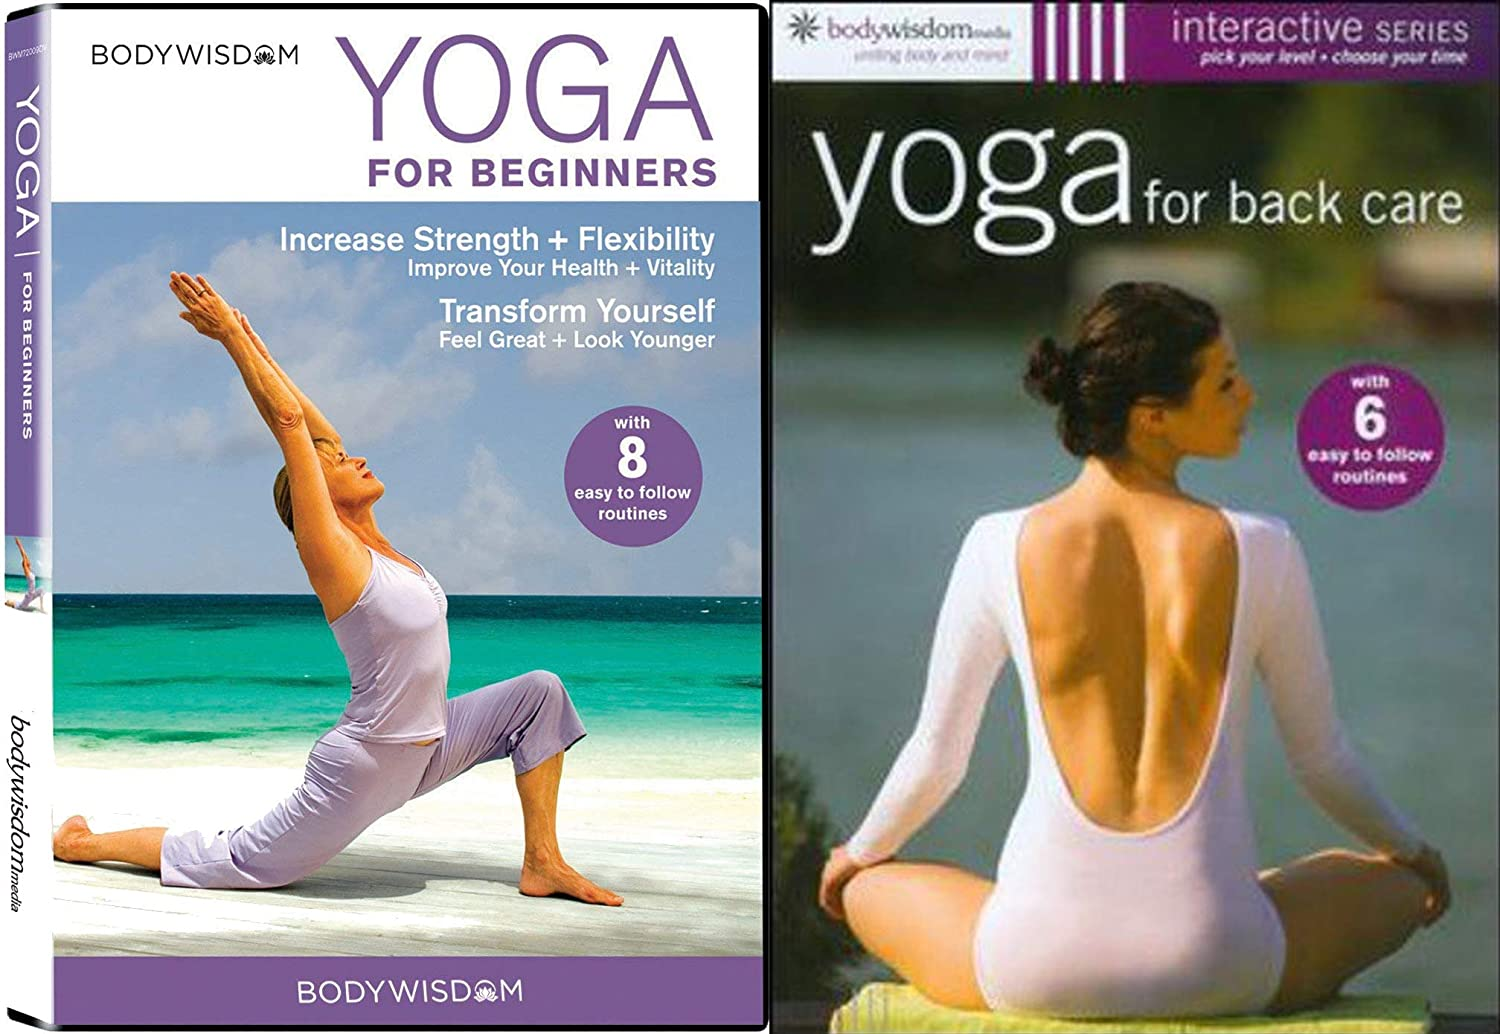 Amazon.com: Yoga for Beginners and Back Care Interactive ...